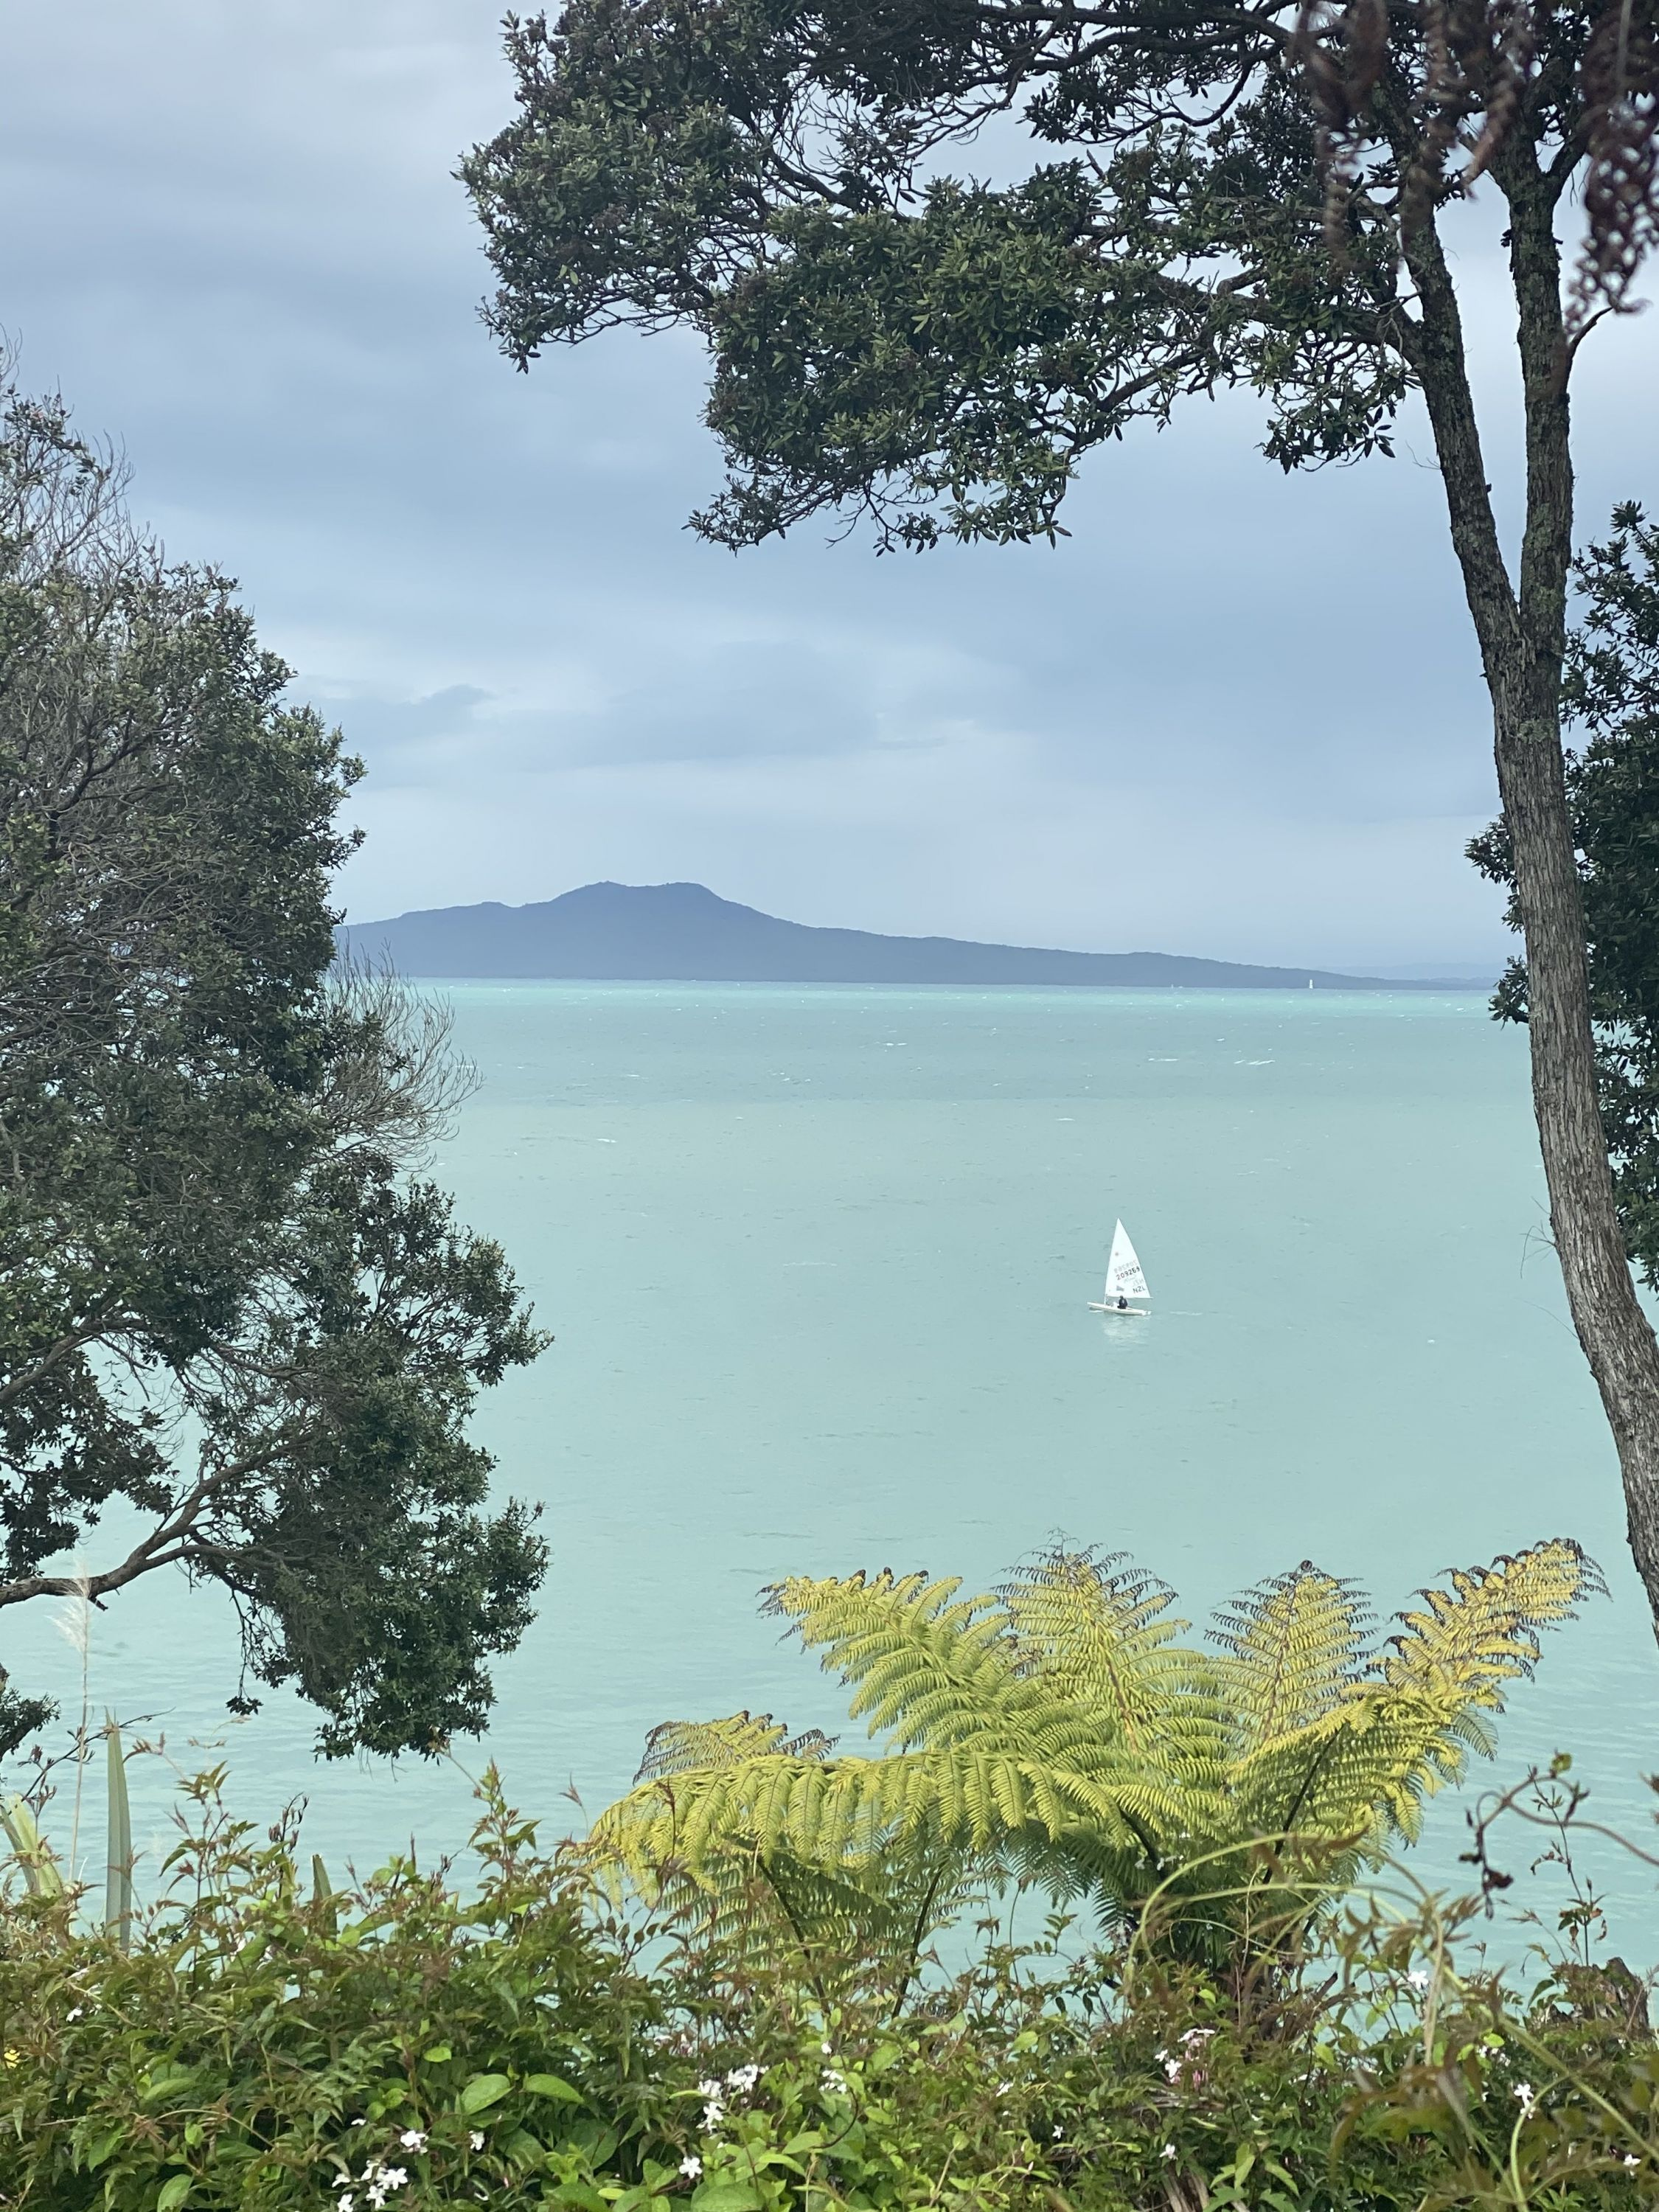 Campbells to Browns Bay by Mike Tennent